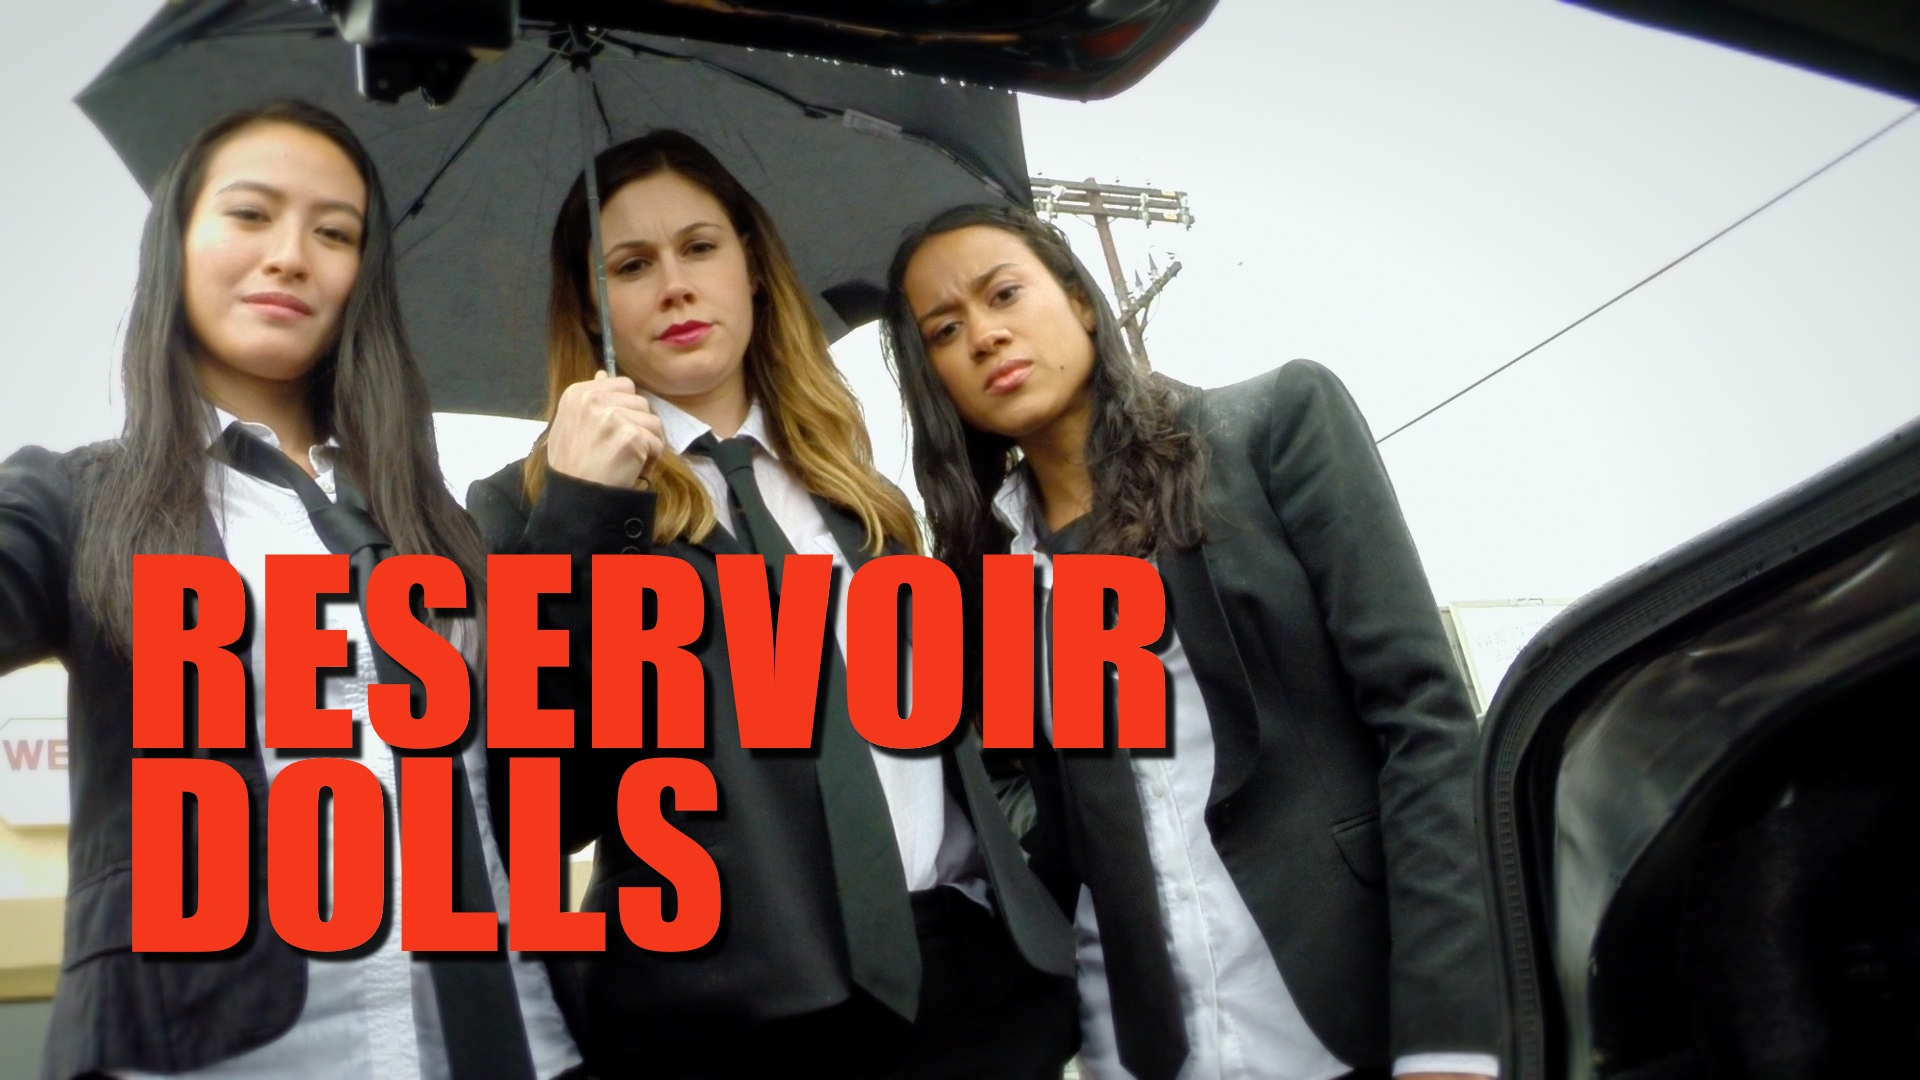 Reservoir Dolls – Chicks Flippin' The Script